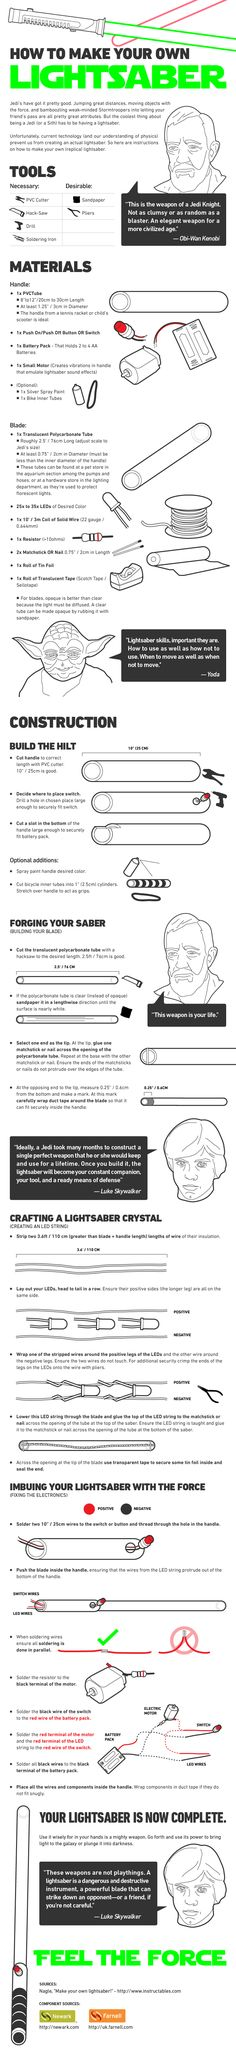 STAR WARS - How to make a Lightsaber Infographic - News - GeekTyrant